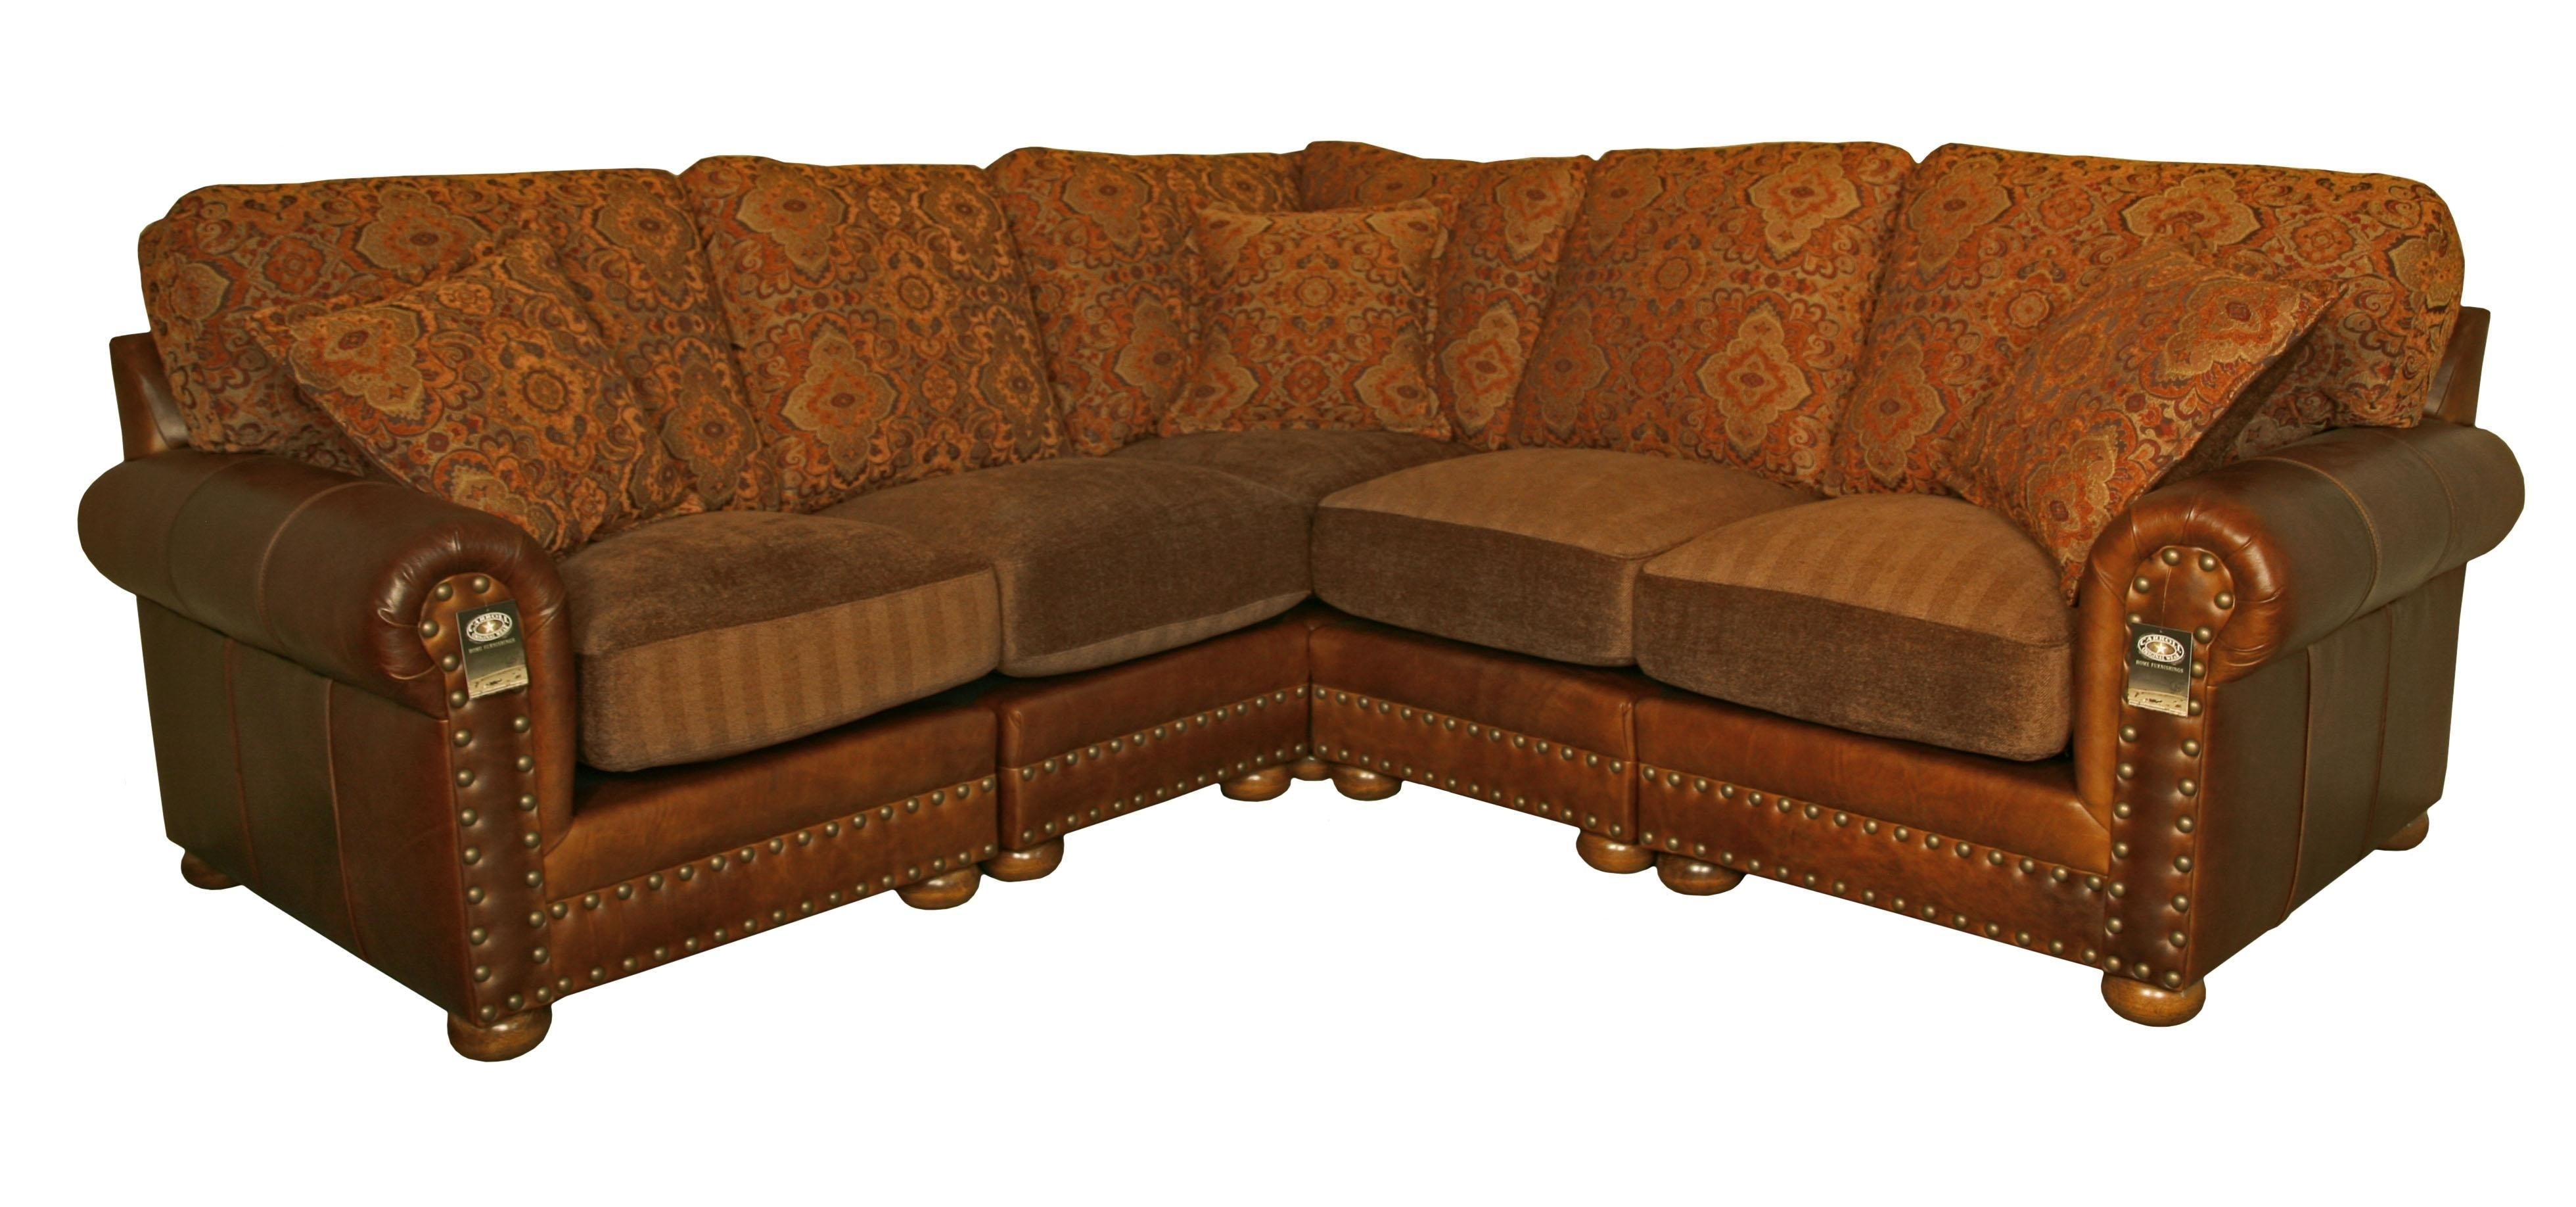 Leather And Cloth Couches | Hinsdale Sectional Sofa Weston Pecan Intended For Leather And Cloth Sofas (Image 2 of 10)